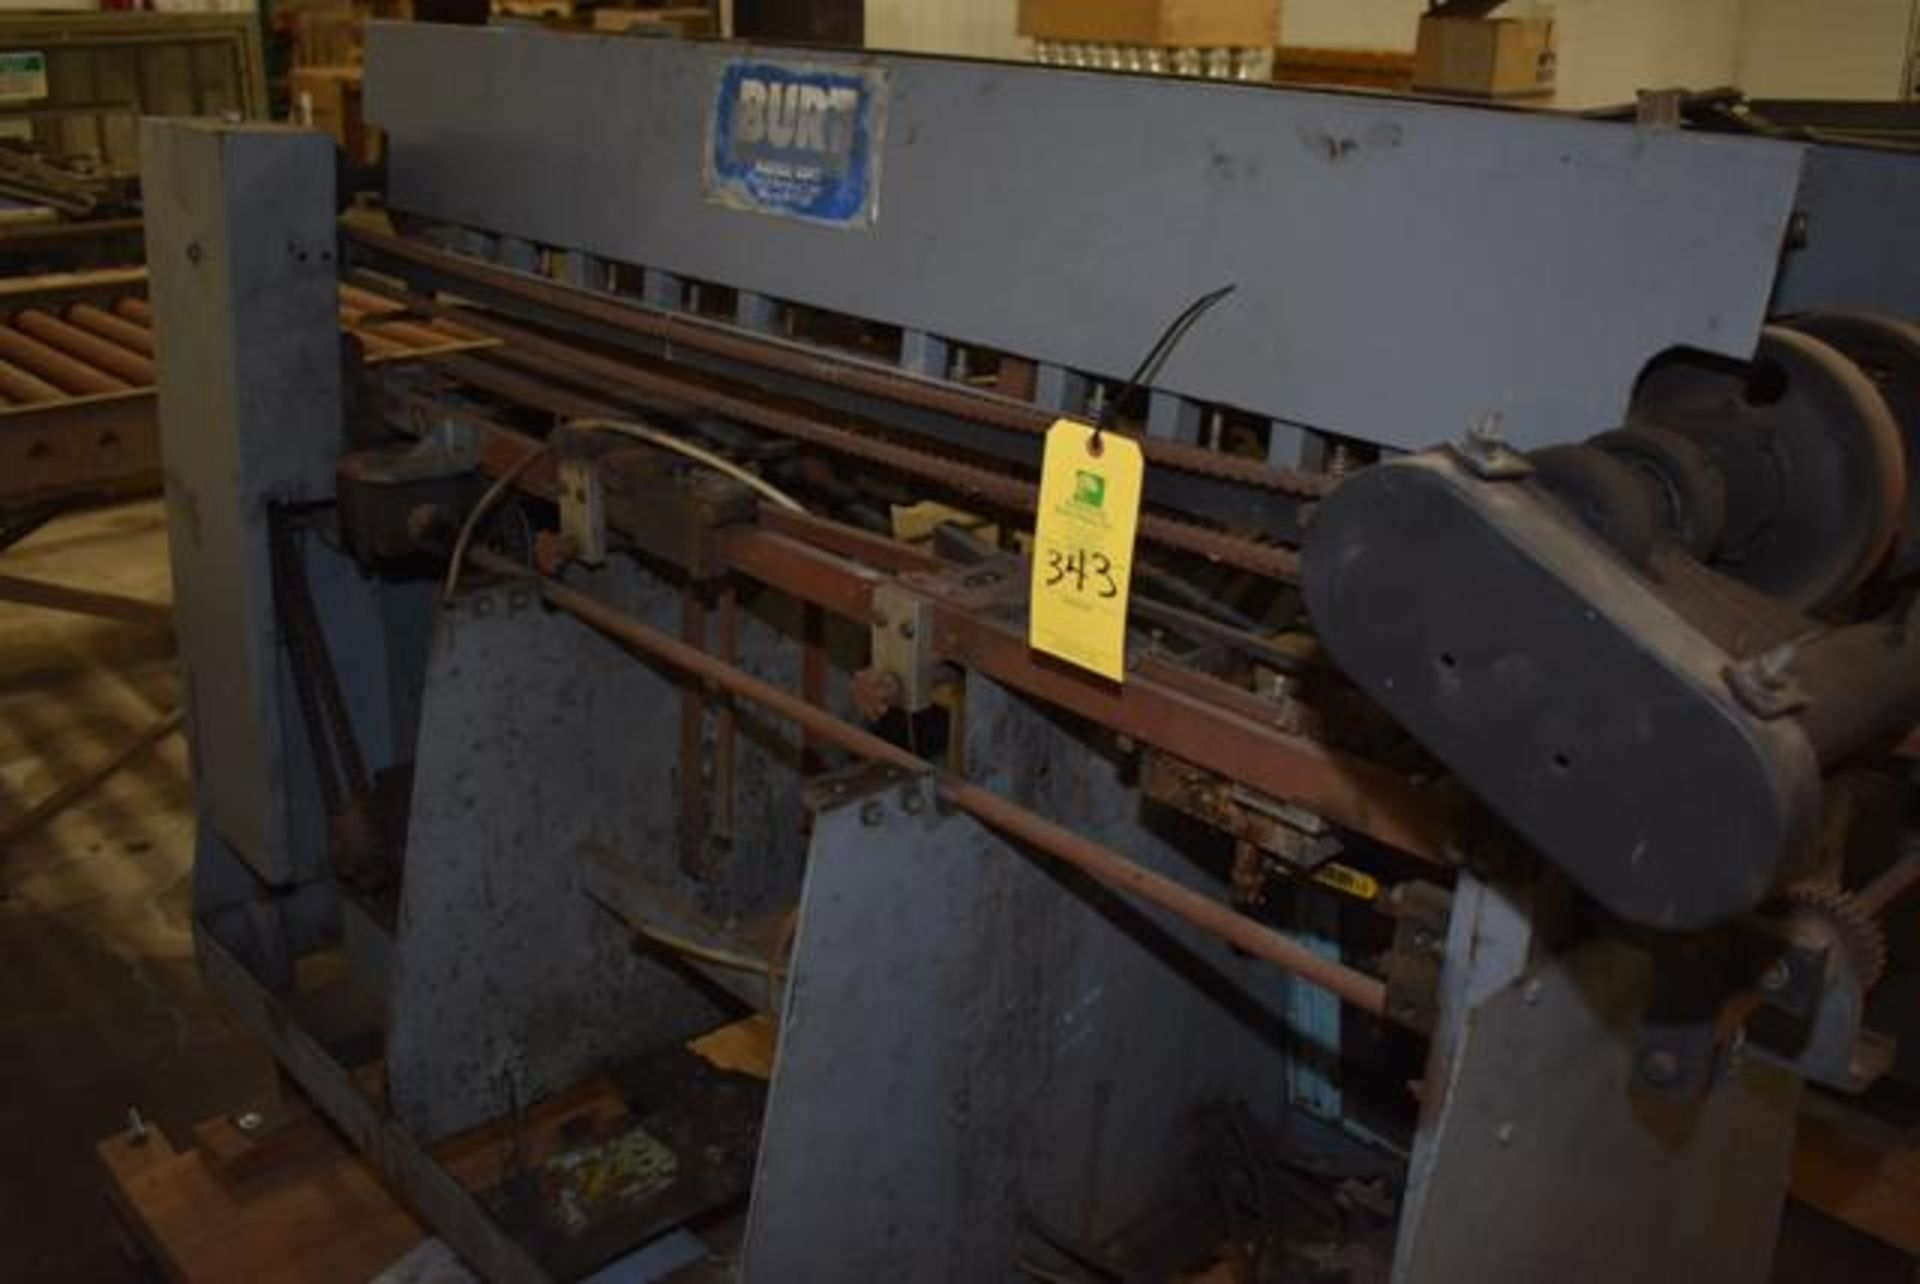 Lot 343 - ( Late Delivery Item Expected Availability Mid May) Burt Model #408D Labeller, S/N 80249,3 Parts & C